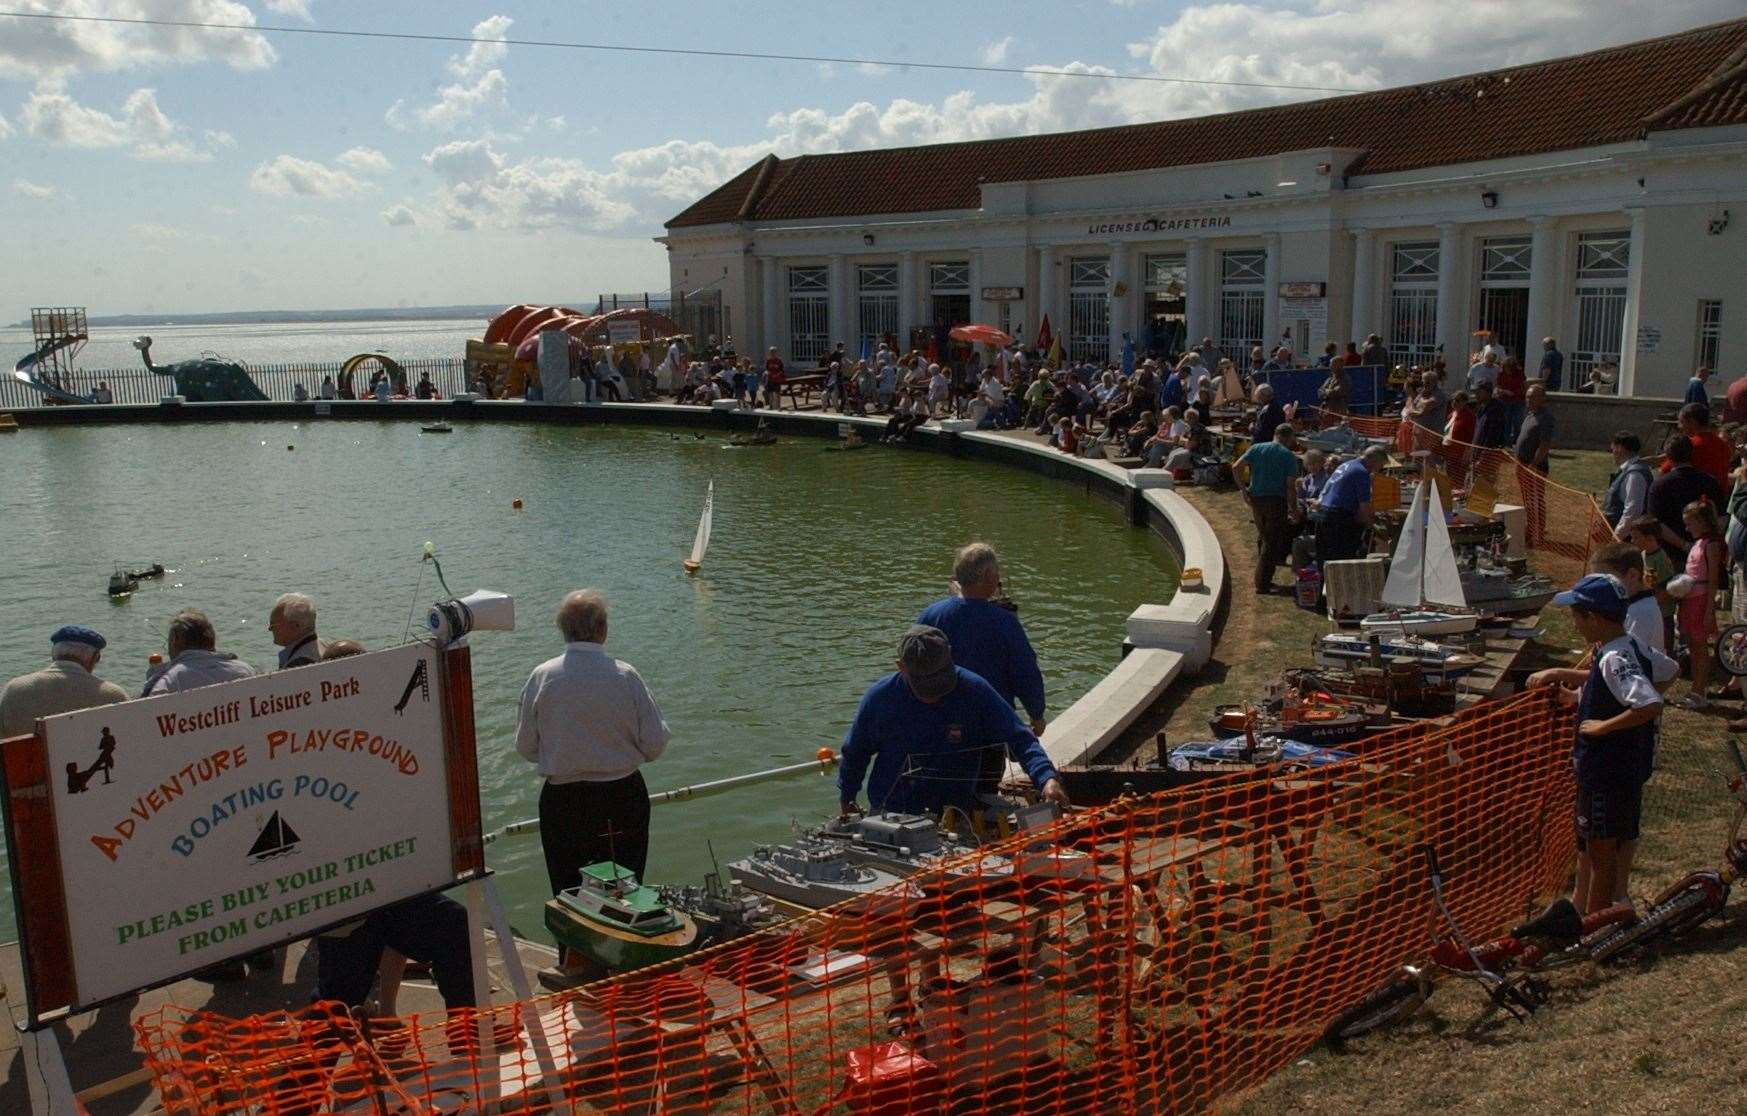 Model ship shows are held at the boating pool in Ramsgate